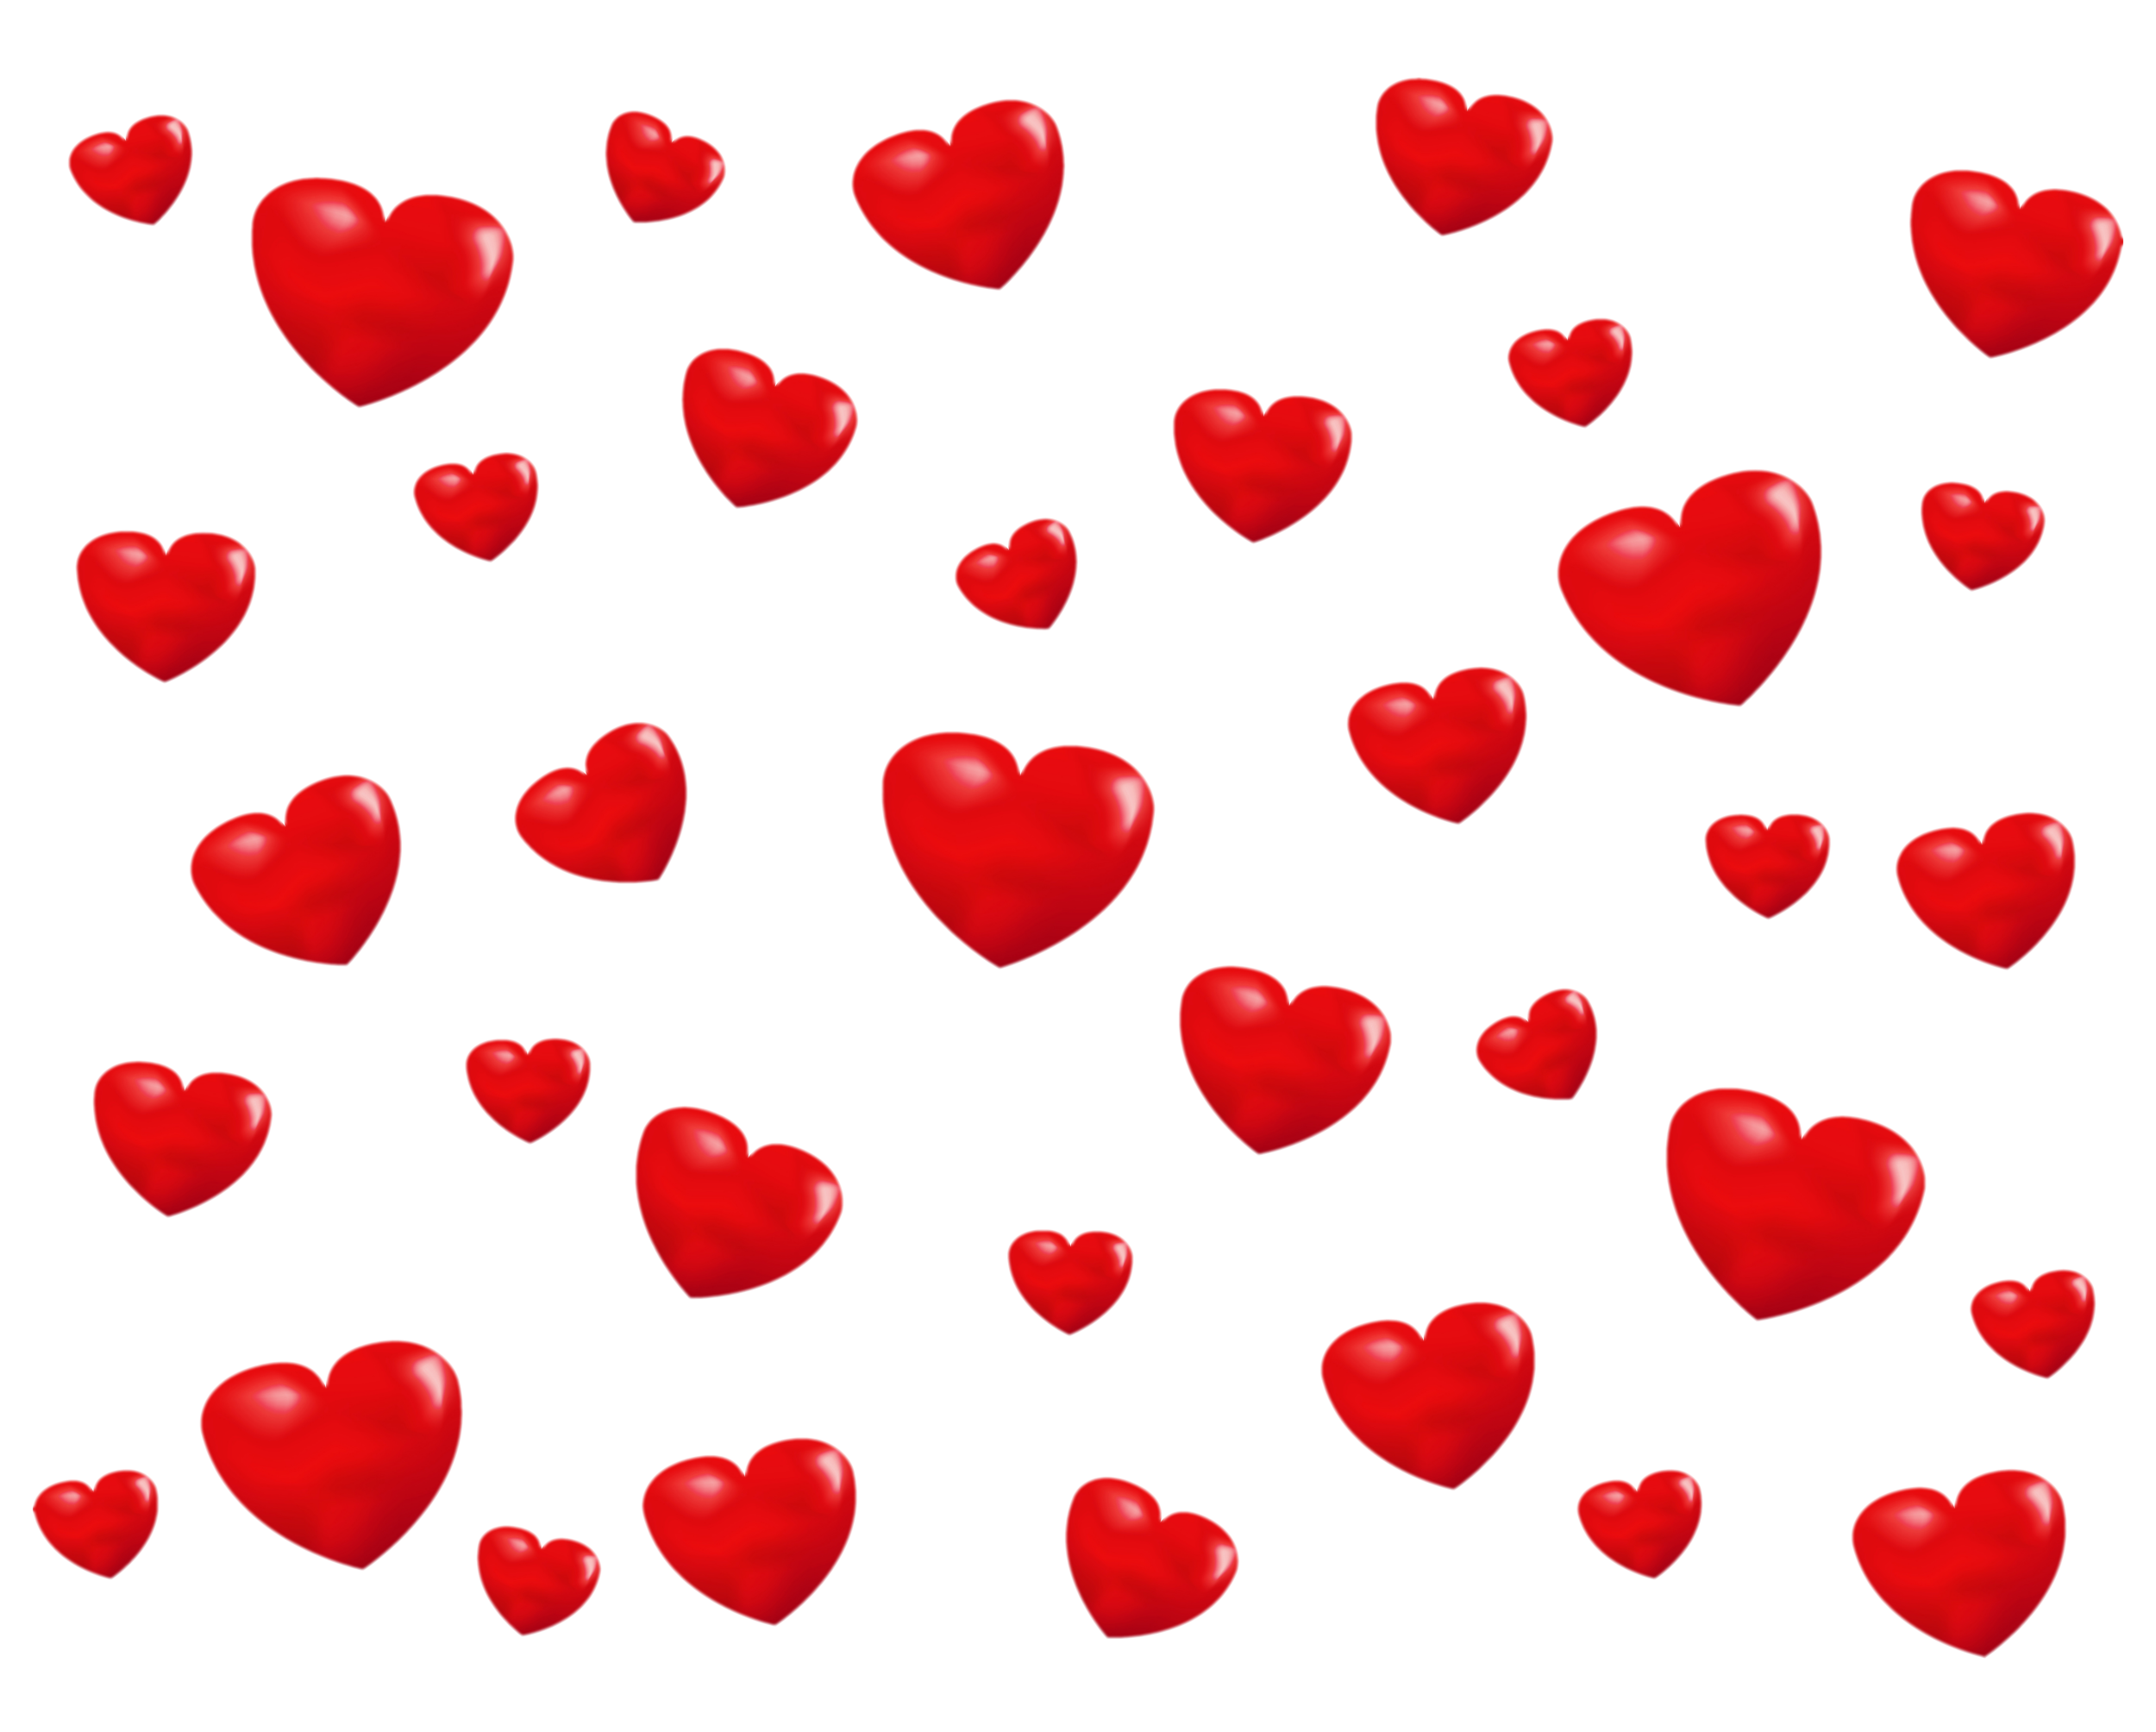 64 heart transparent background free cliparts that you can download to ...